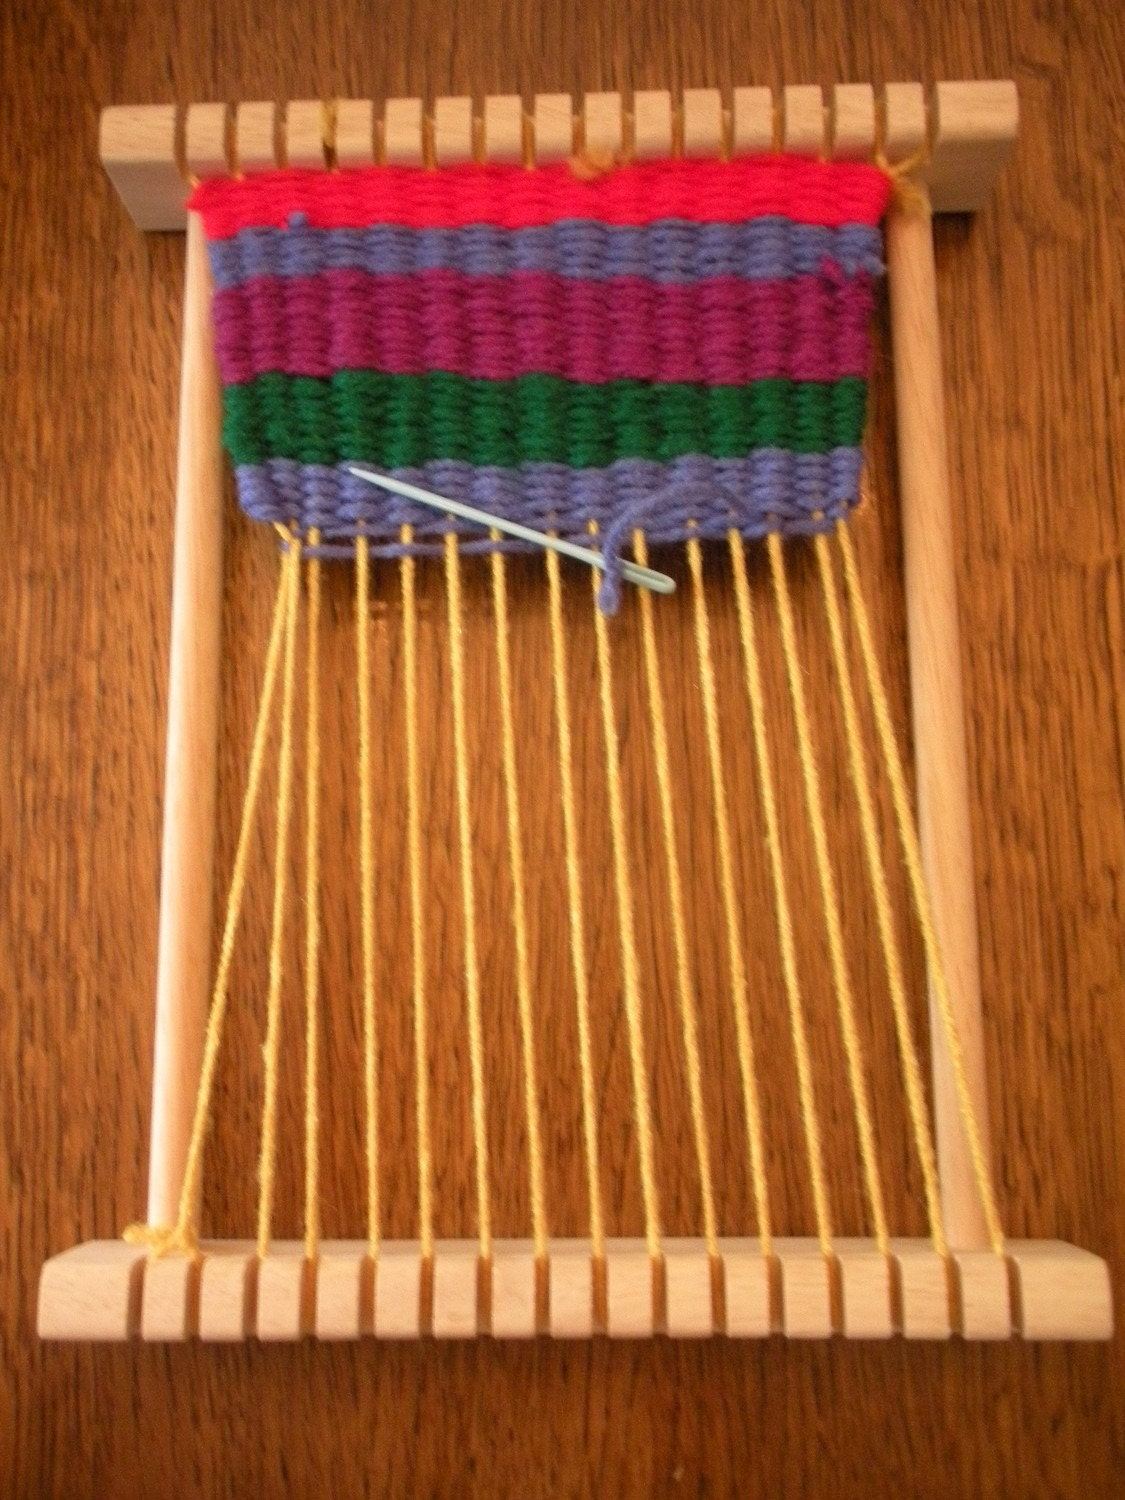 Small Wooden Weaving Loom For A Child By Wheretheroostercrows